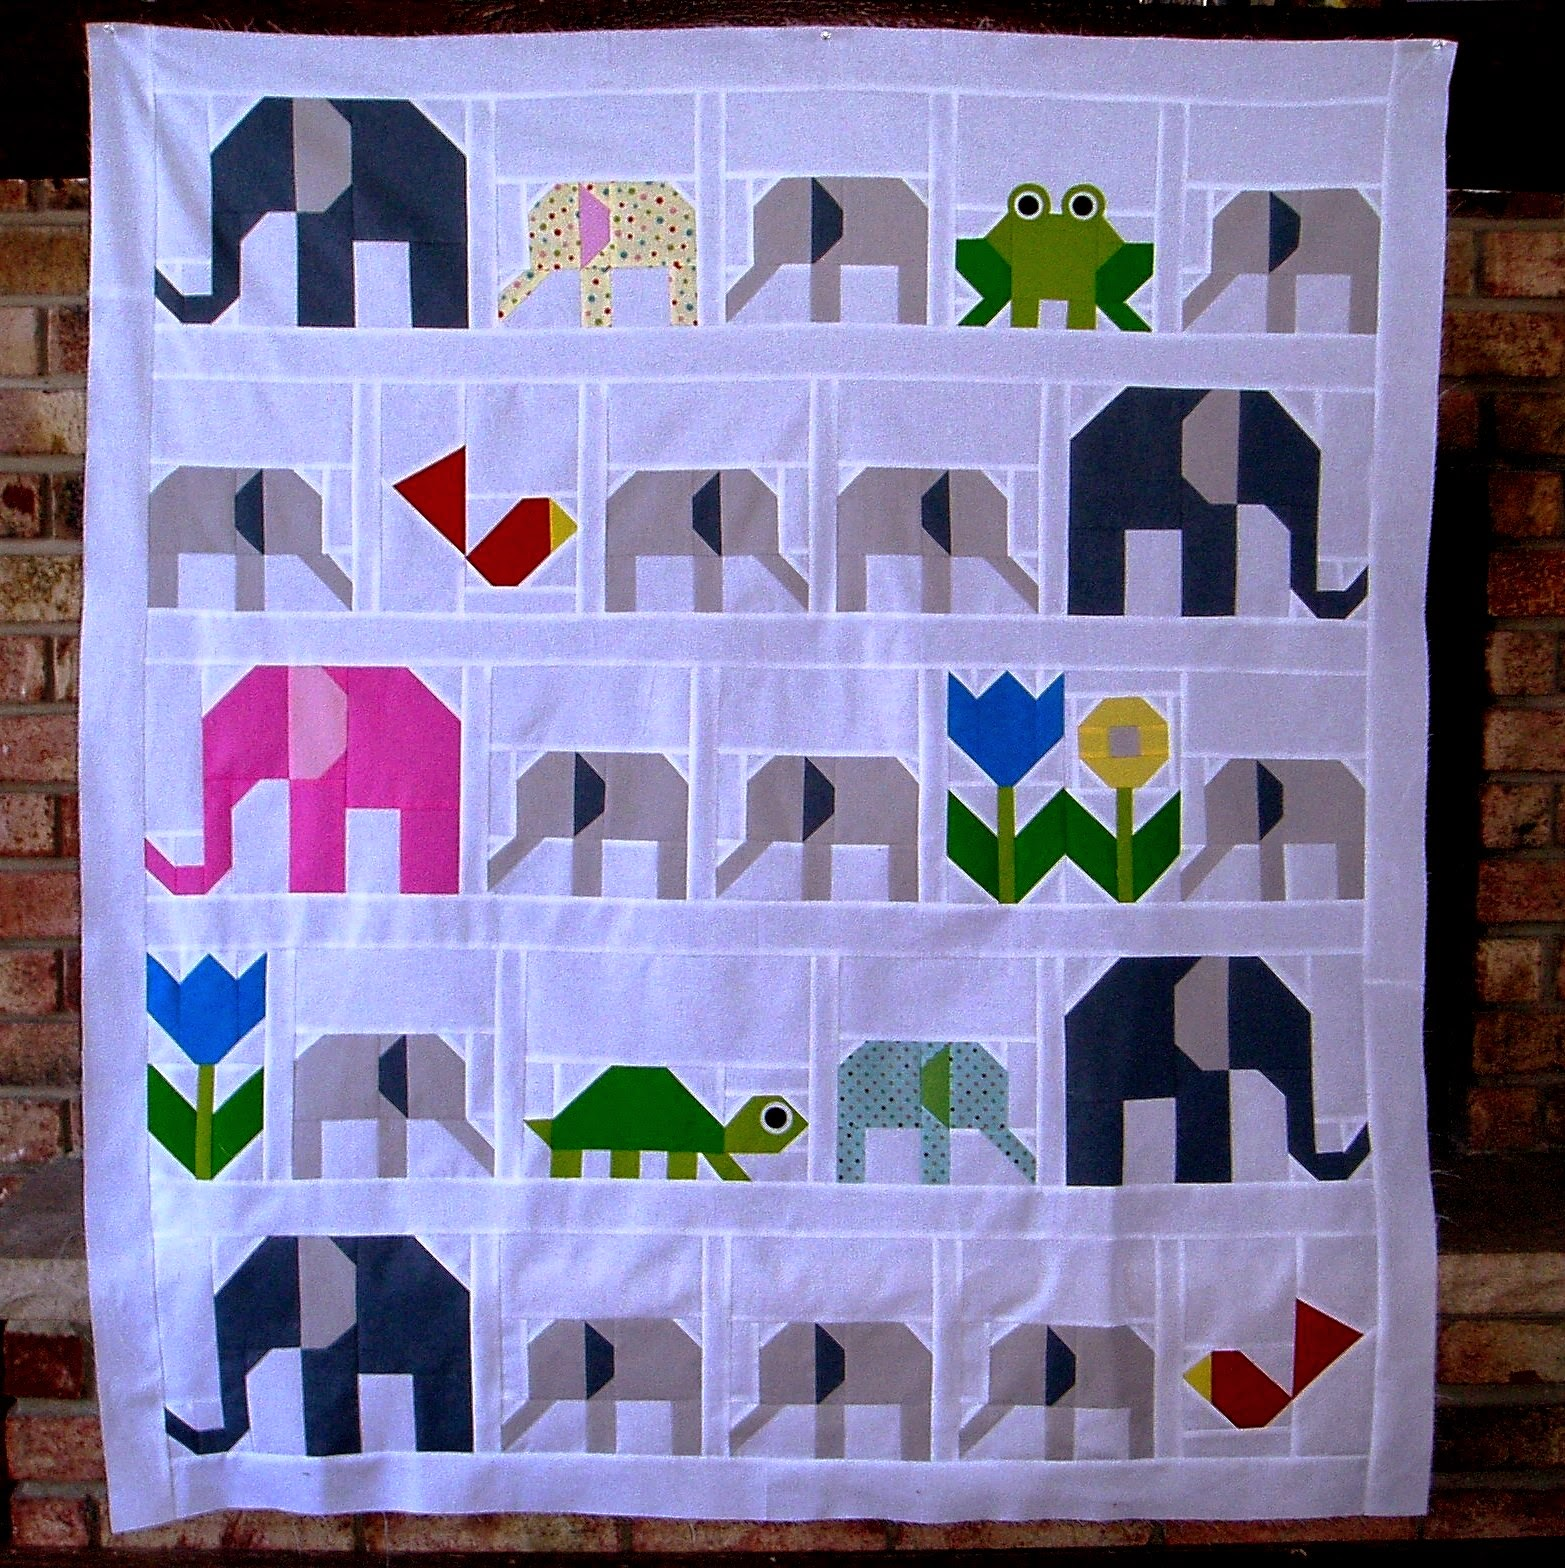 The Academic Quilter: Mutant elephants